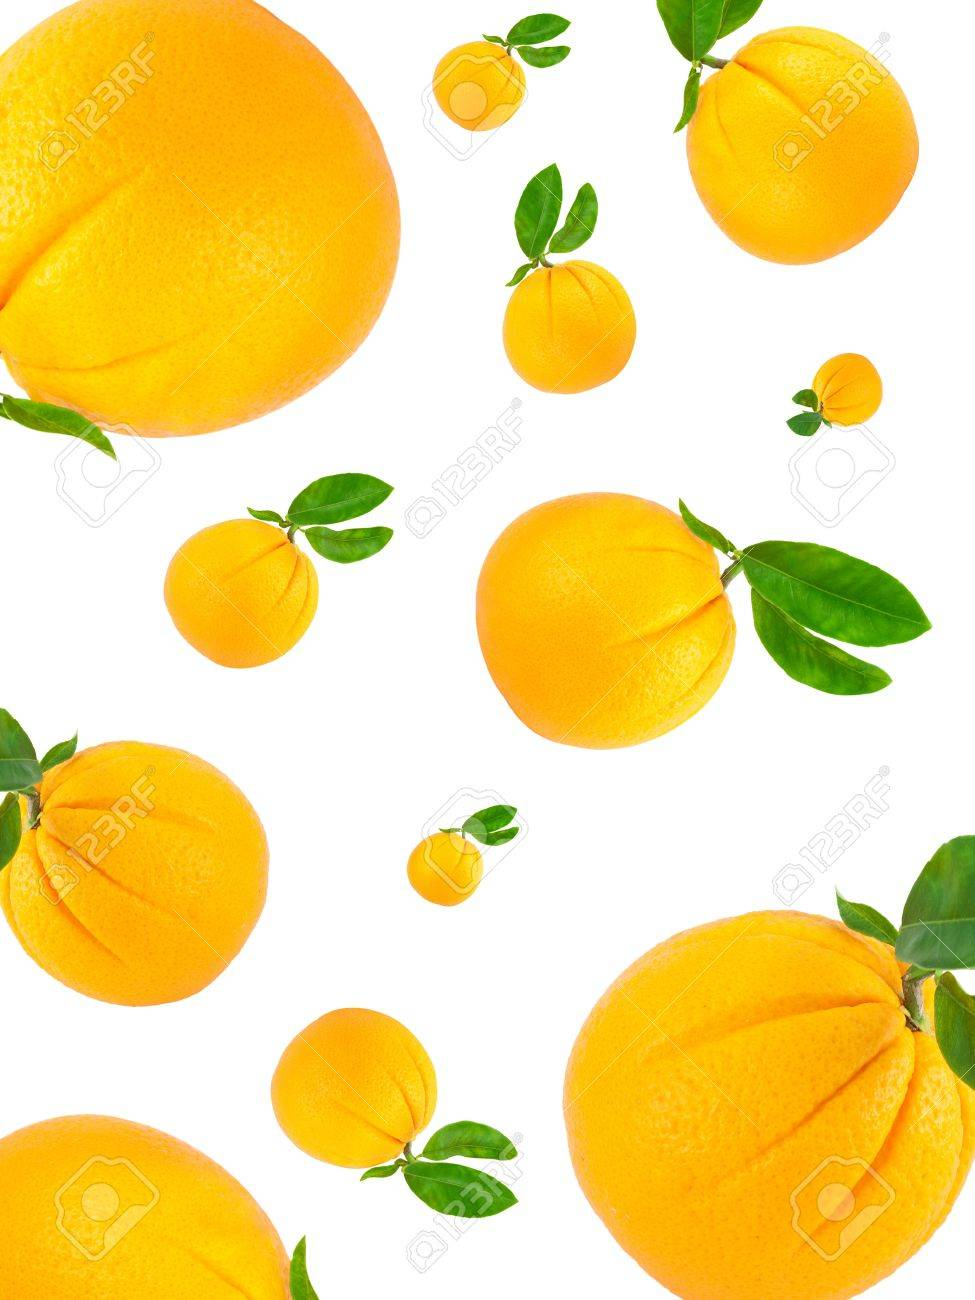 Orange  with green leaves   making a border Isolated on a white background Stock Photo - 11618258